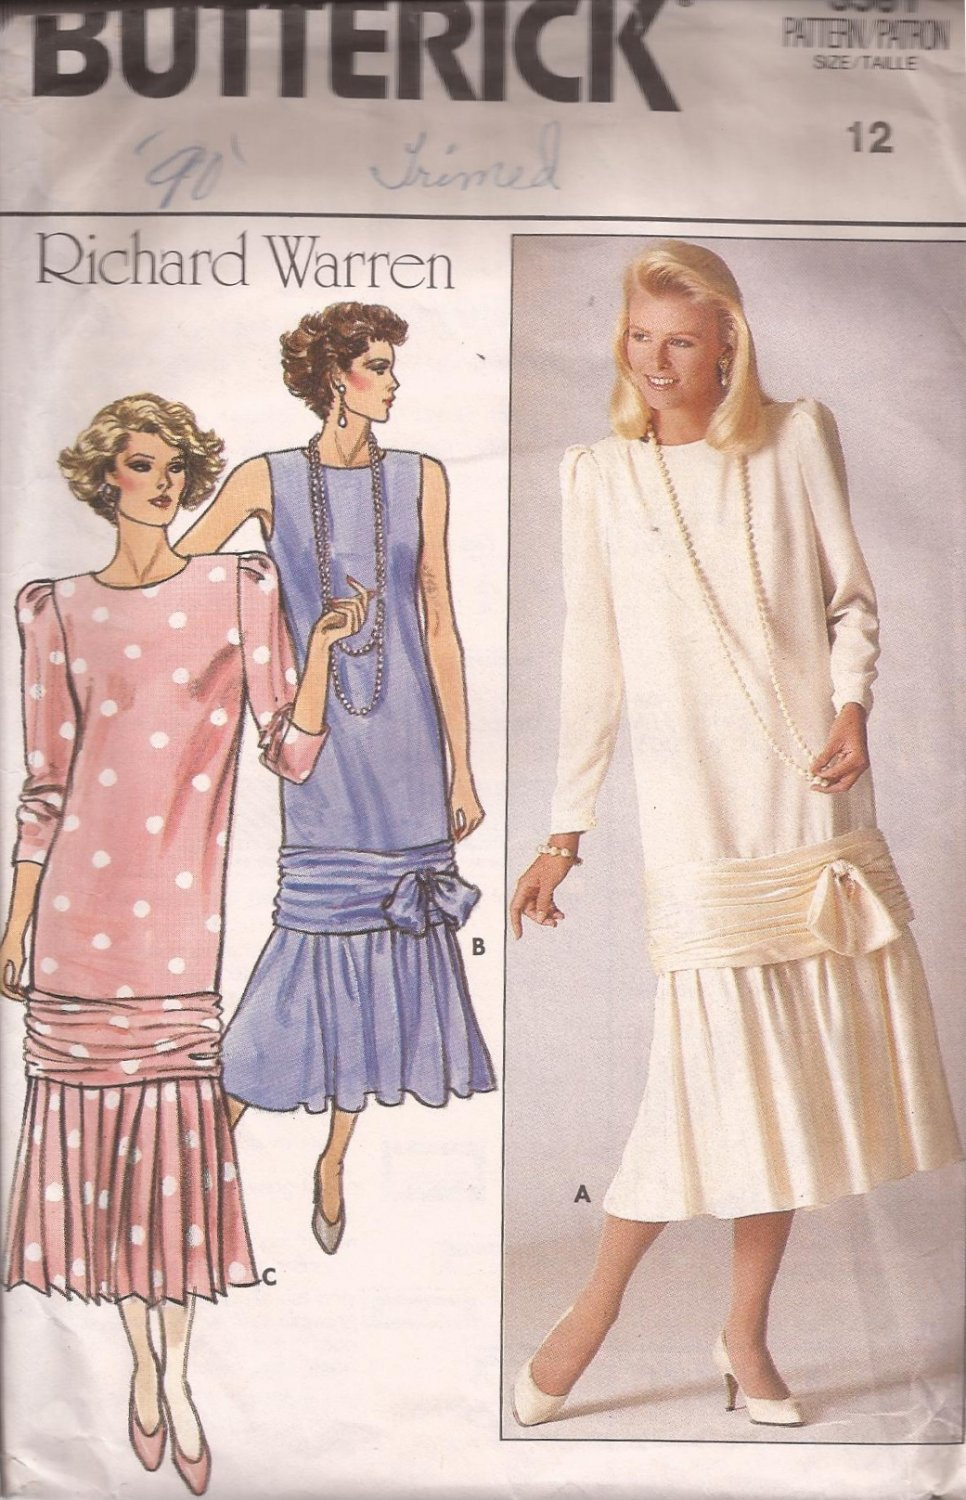 Butterick 3581 (1985) Evening, Special Occassion, Mother of Bride Dress Pattern Size 12 CUT